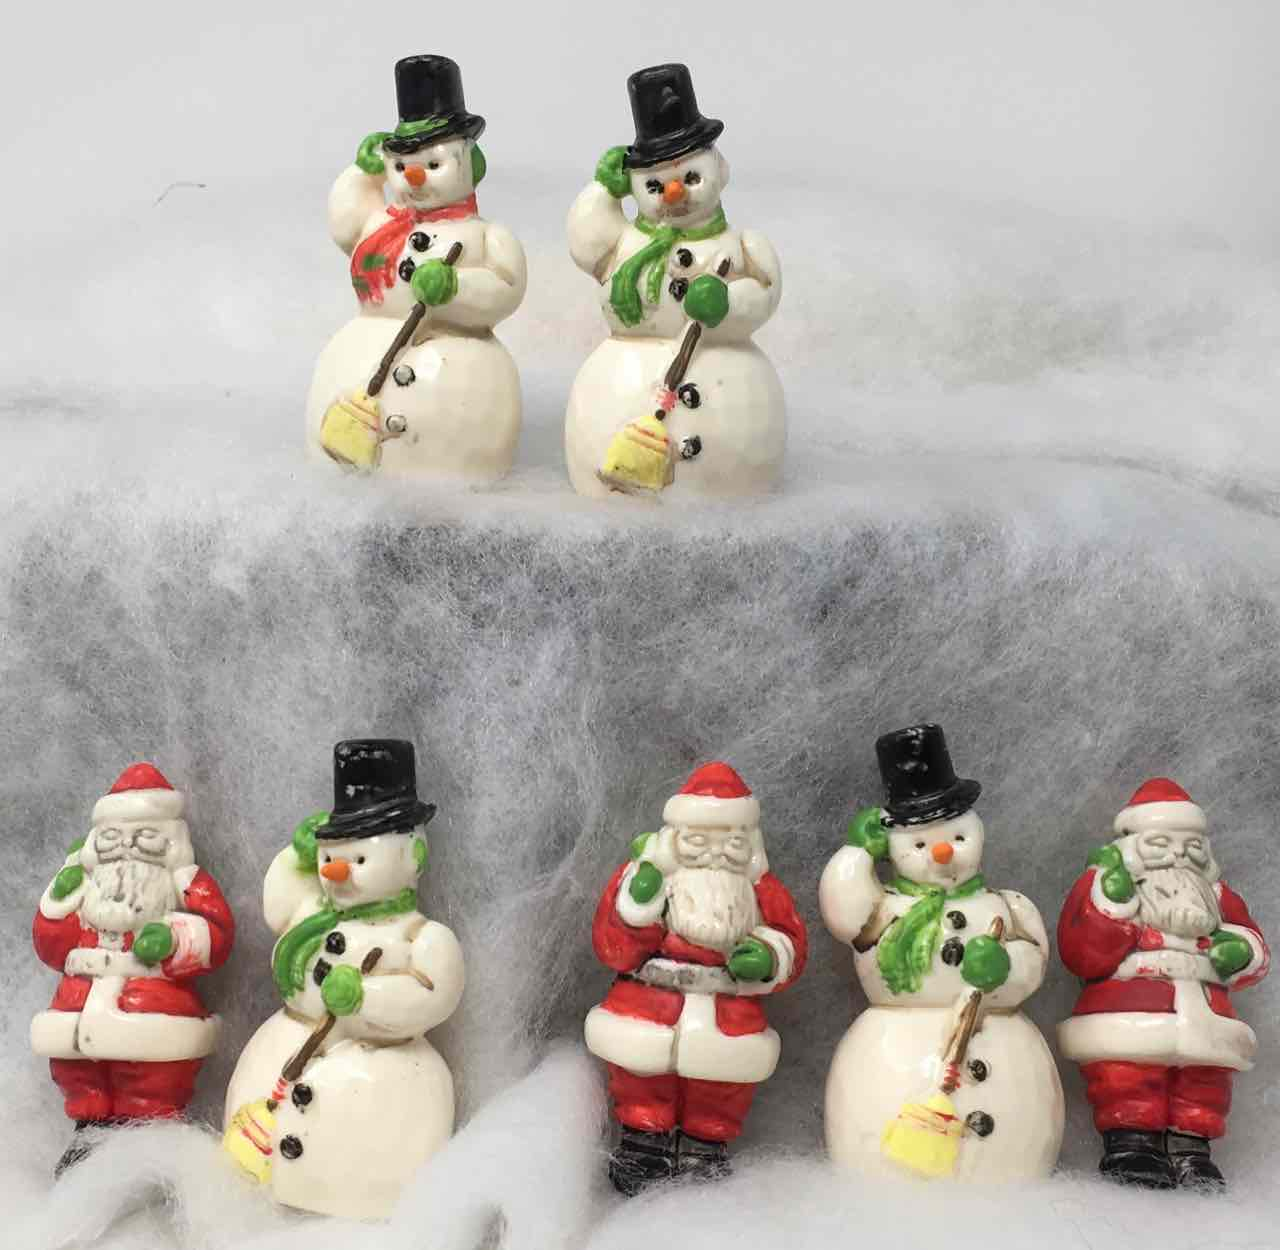 Painted Tim Holtz Salvaged Santa and Snowmen for Christmas wreath